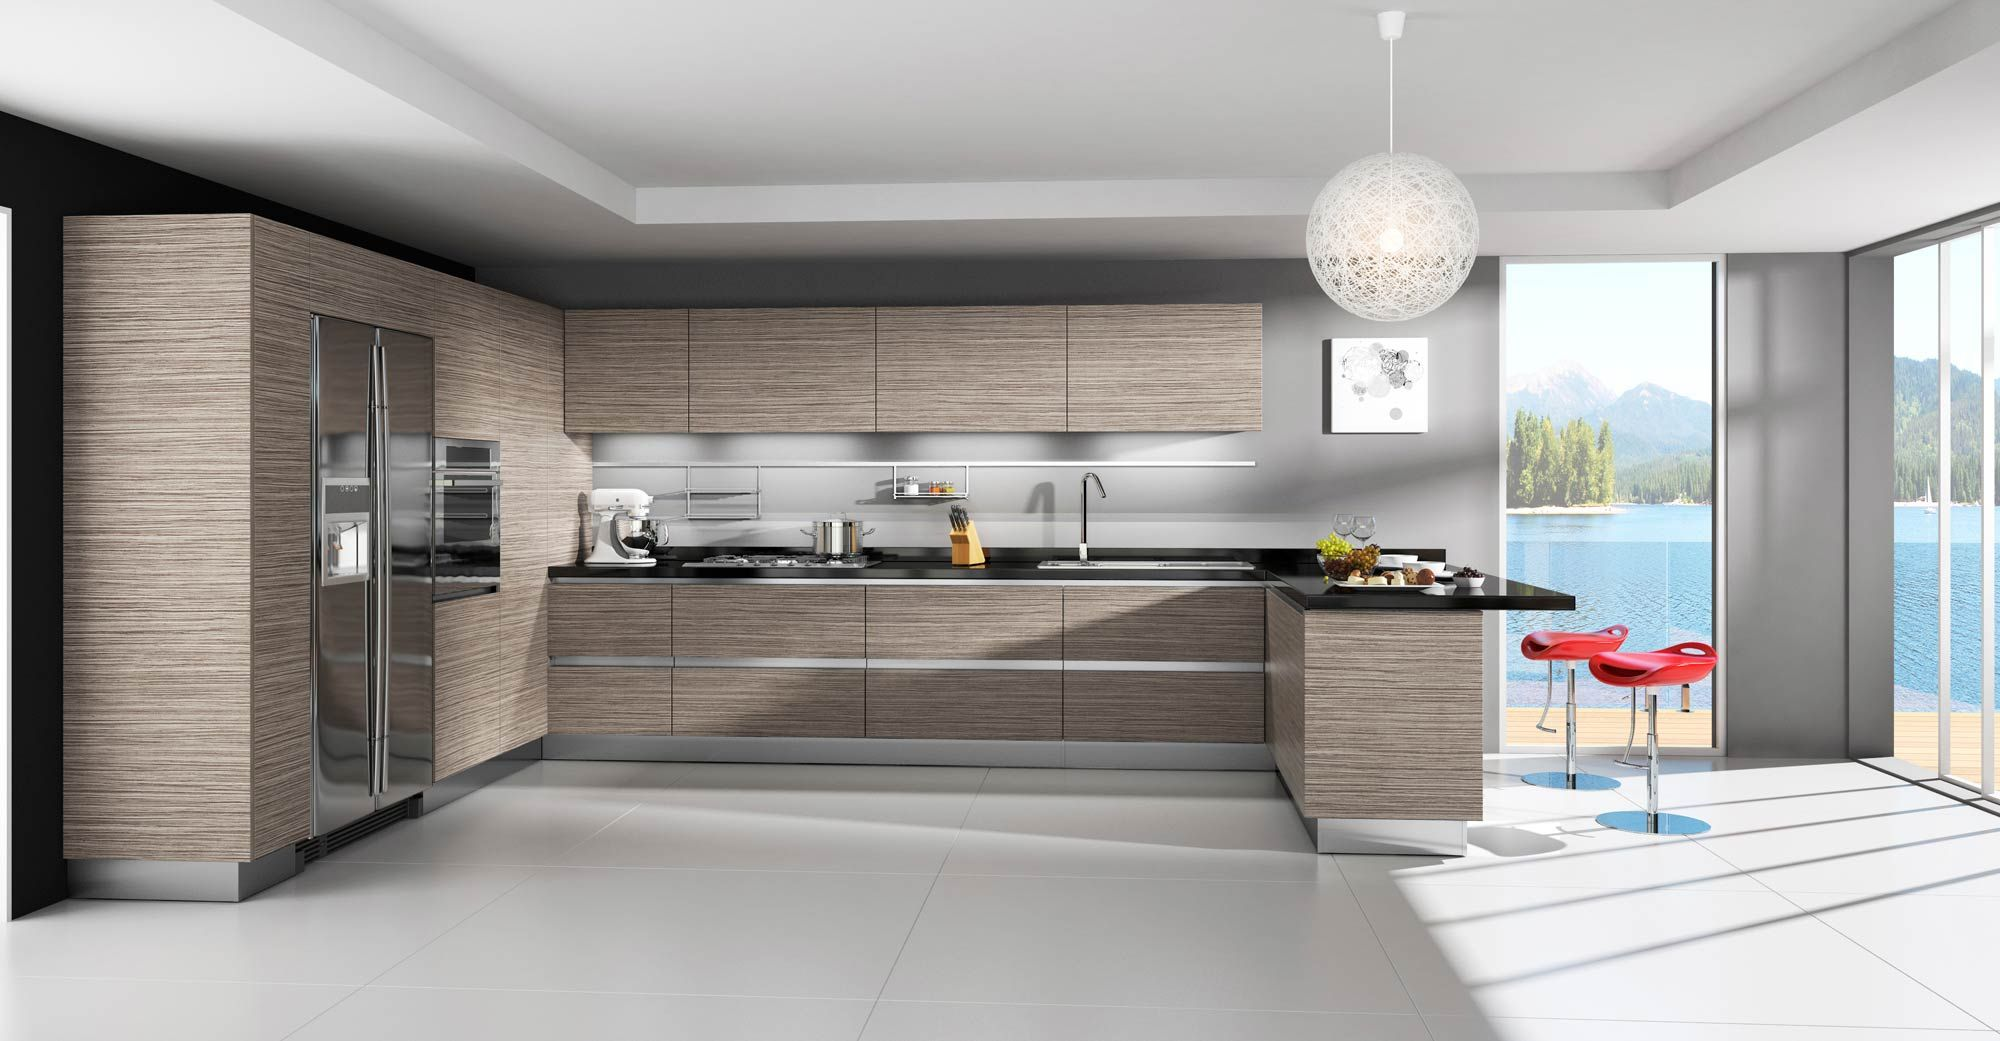 amusing modern cabinetry pics inspiration modern kitchen design modern kitchen cabinets on kitchen cabinets modern contemporary id=40880